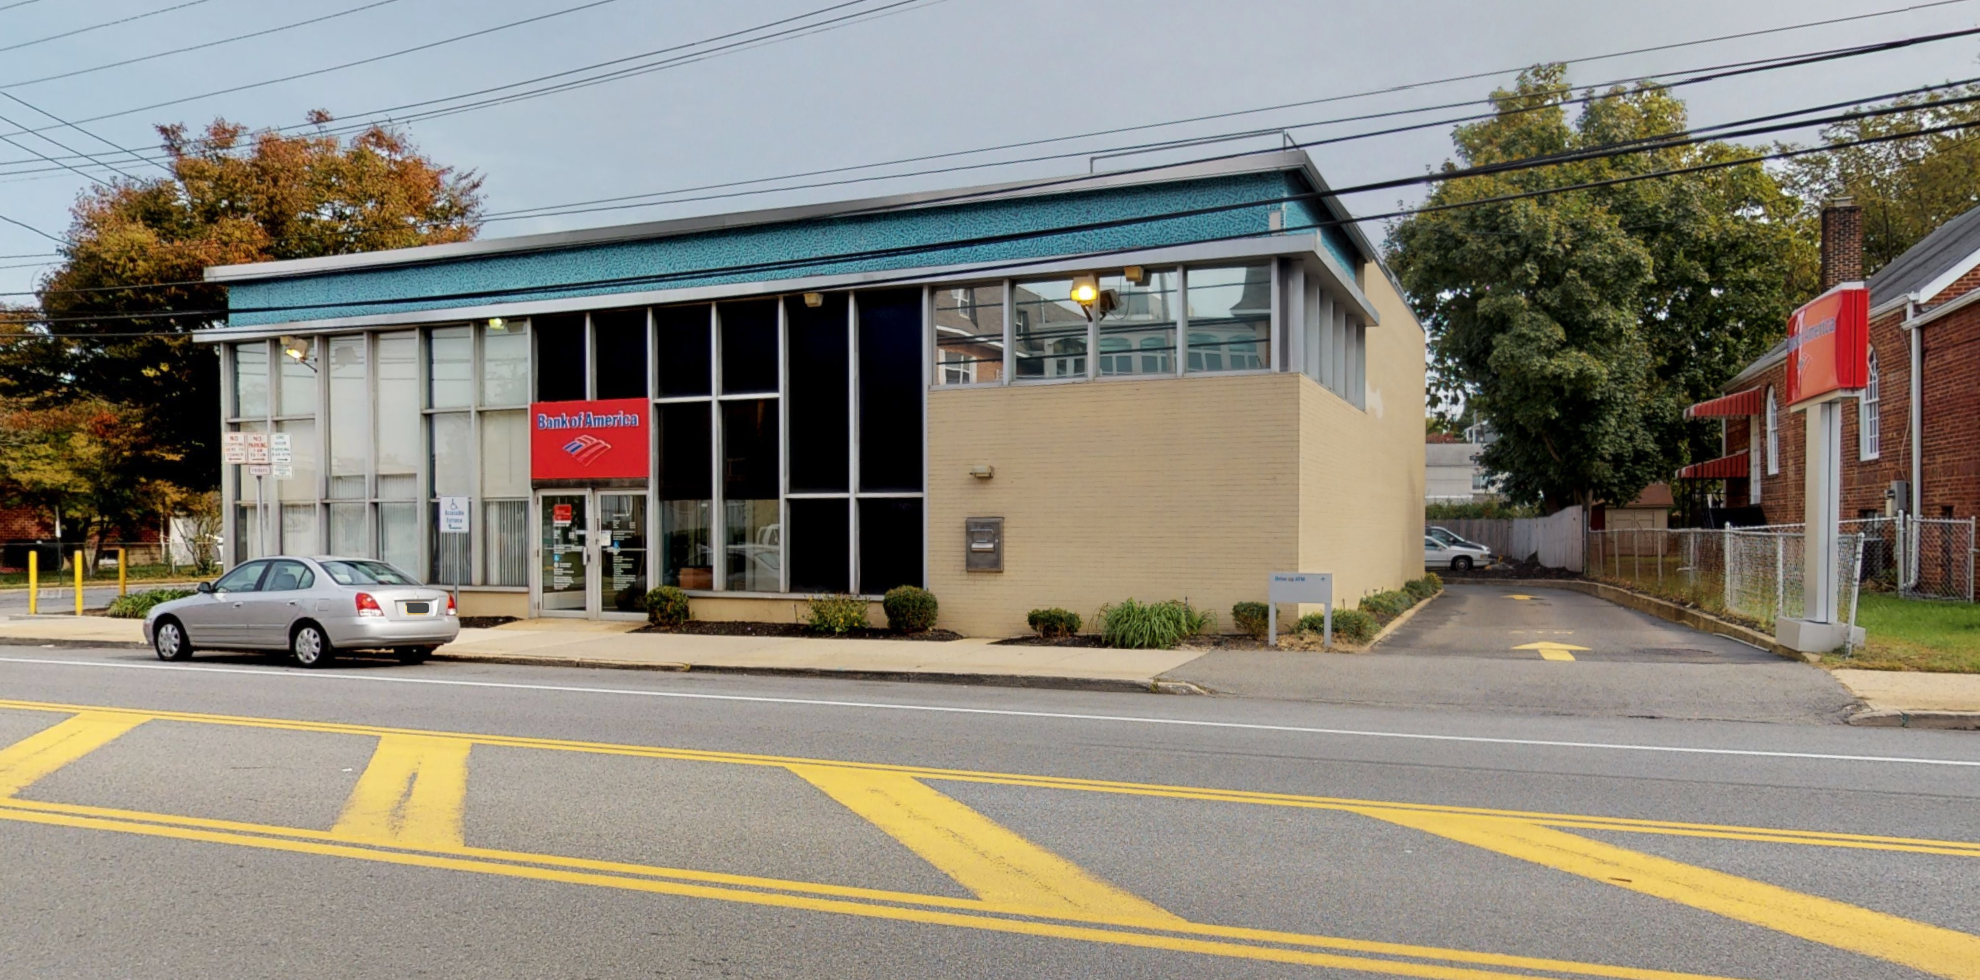 Bank of America financial center with drive-thru ATM | 157 South St, Oyster Bay, NY 11771